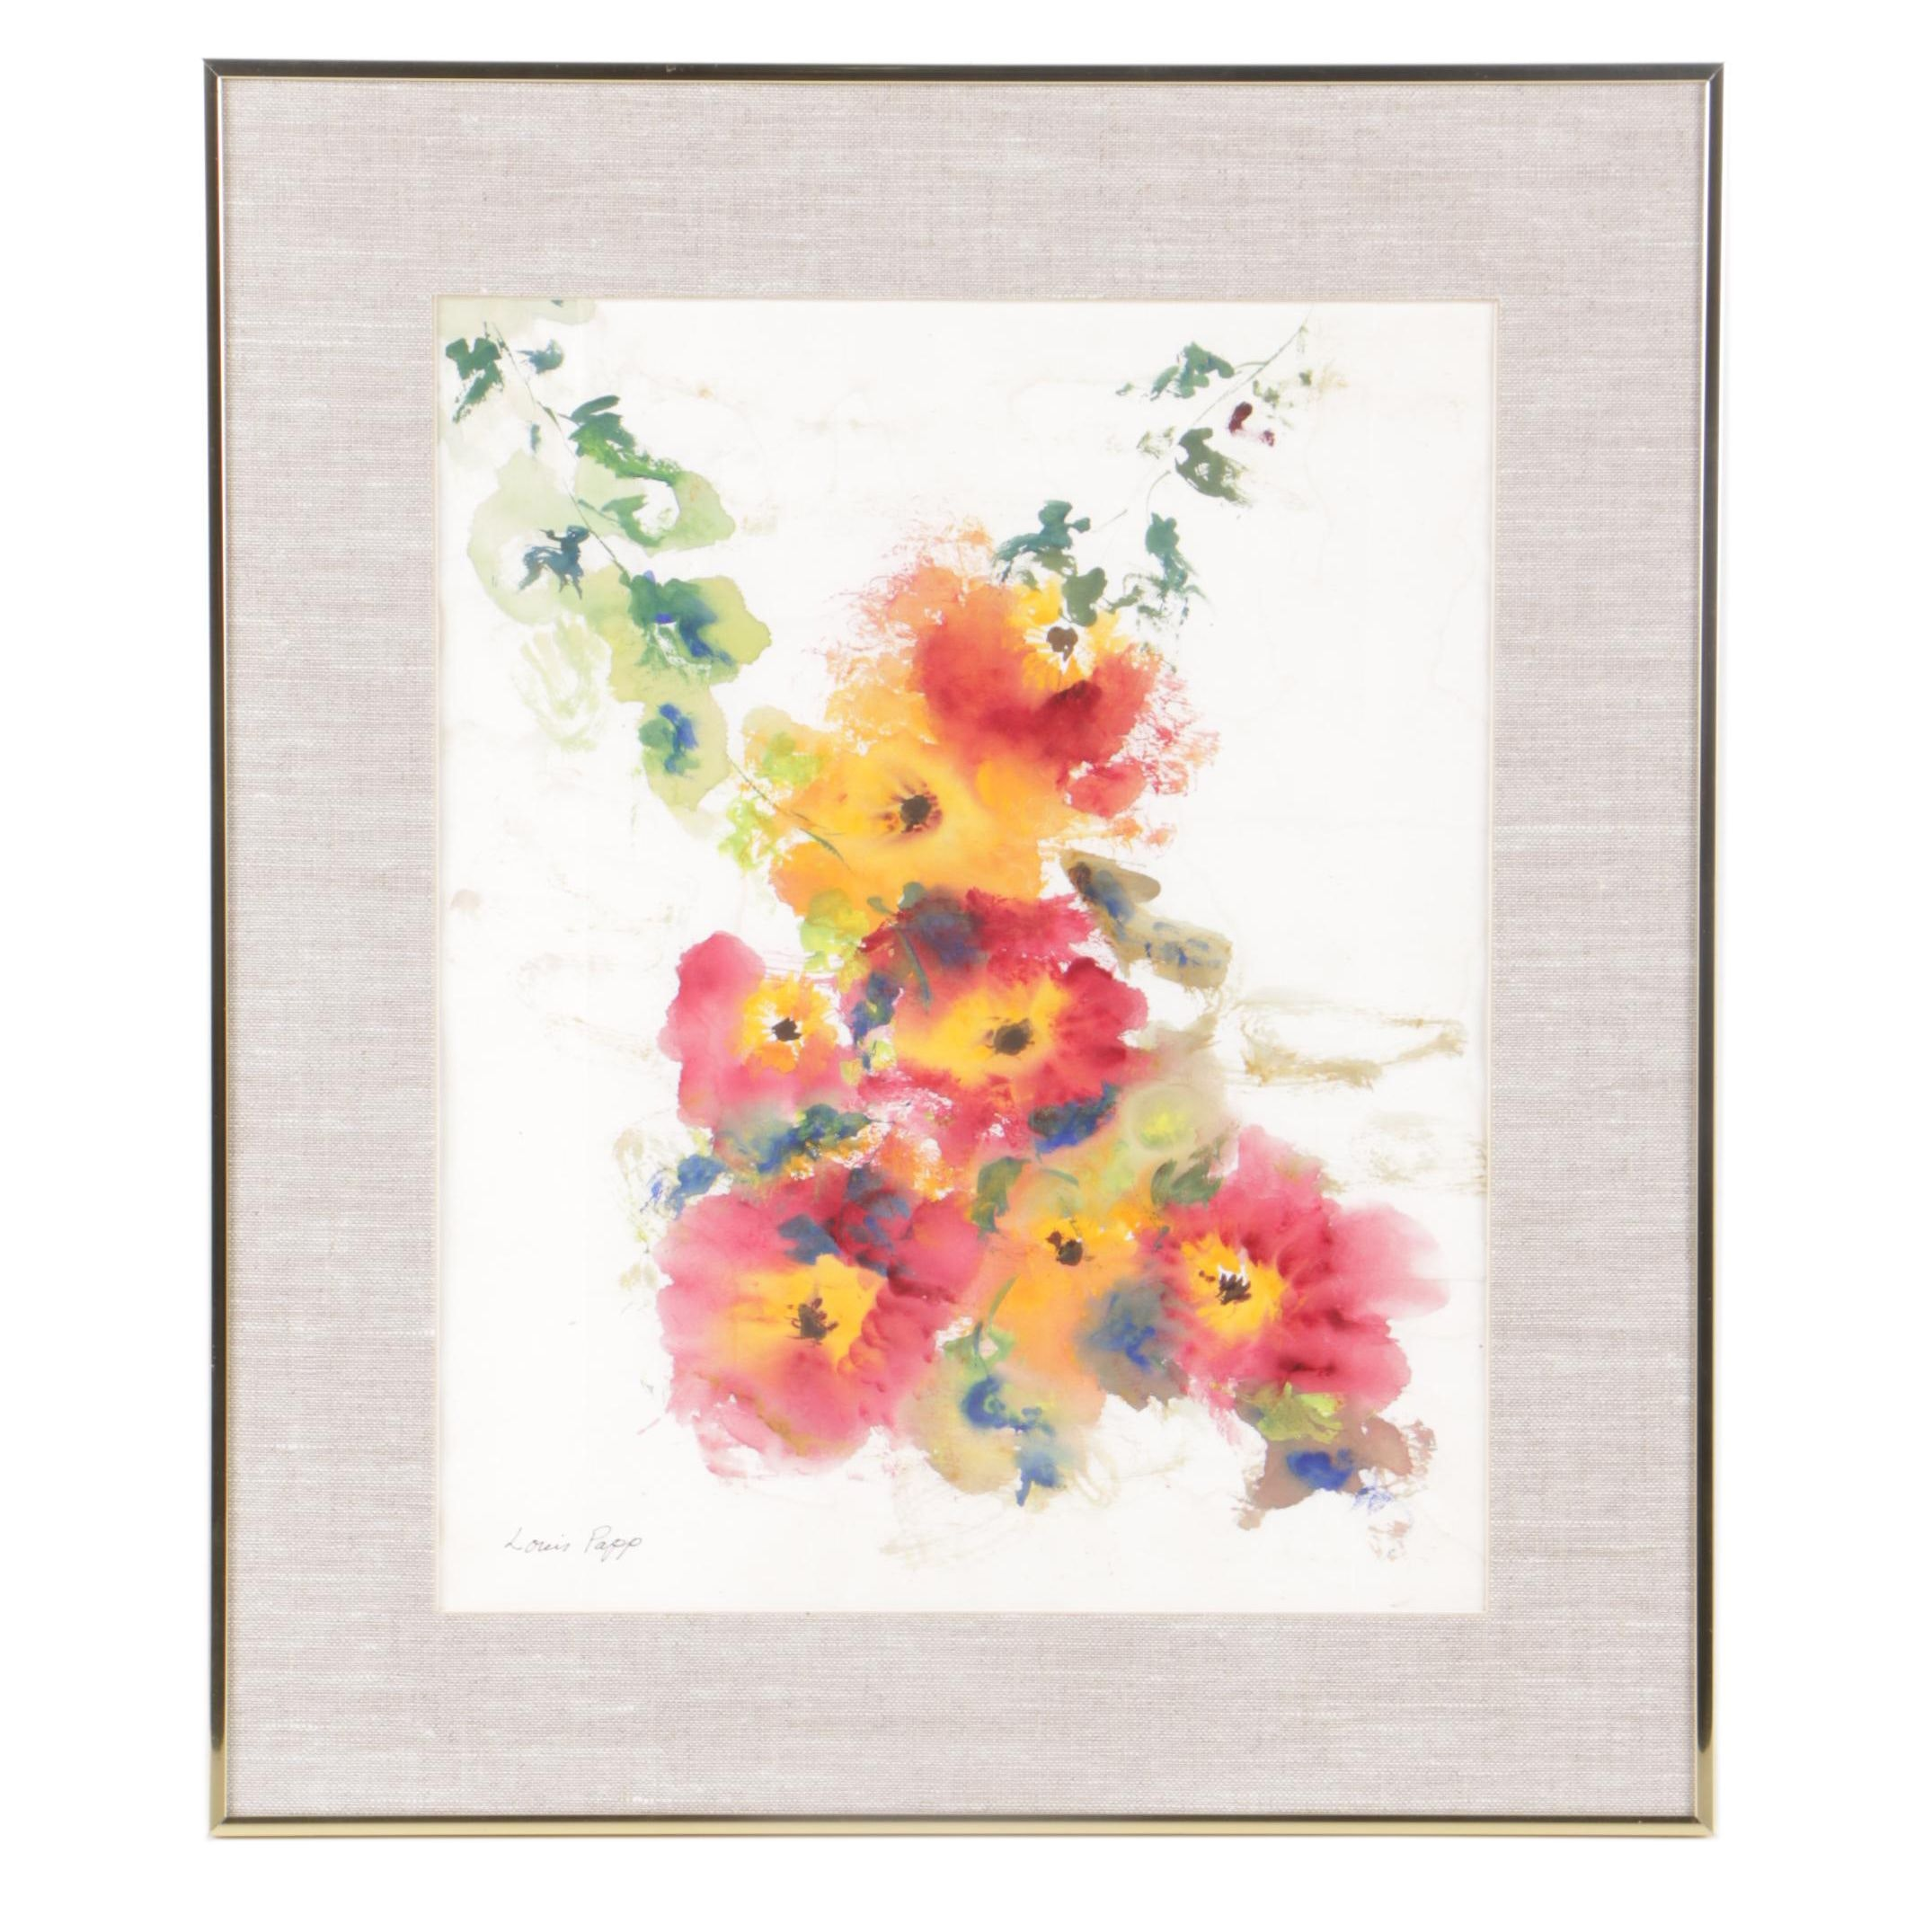 Louis Papp Watercolor Painting of Abstract Floral Composition